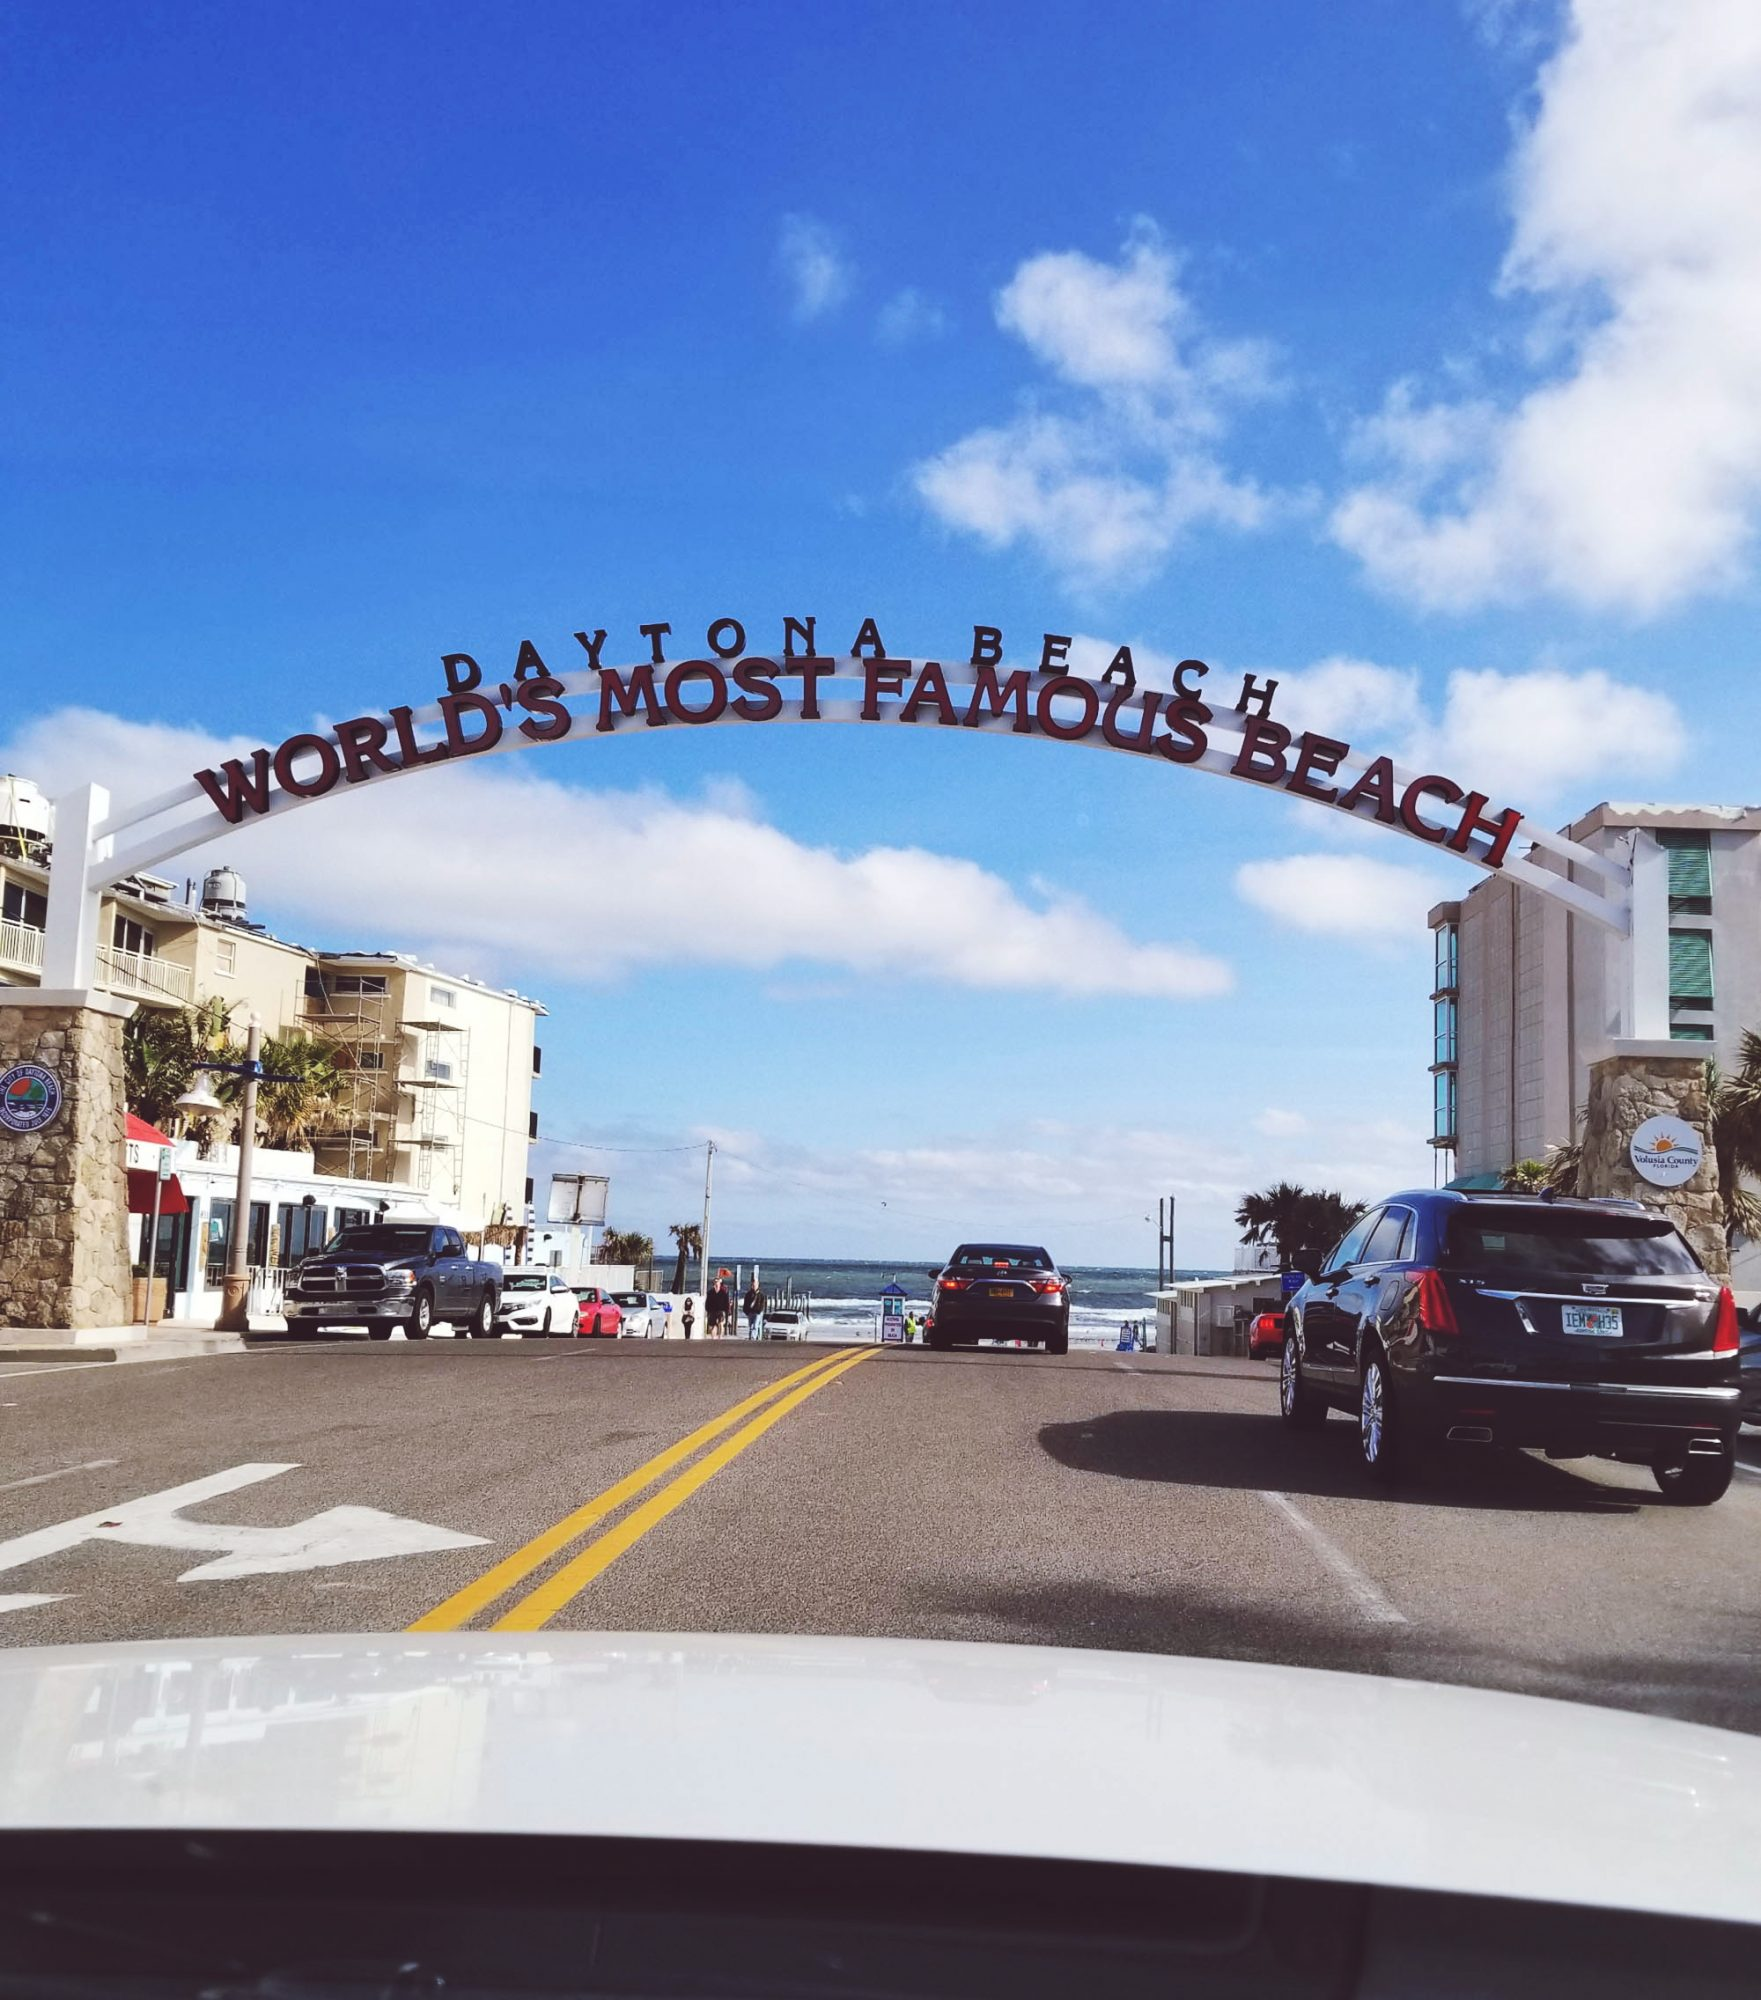 World's Most Famous Beach Daytona